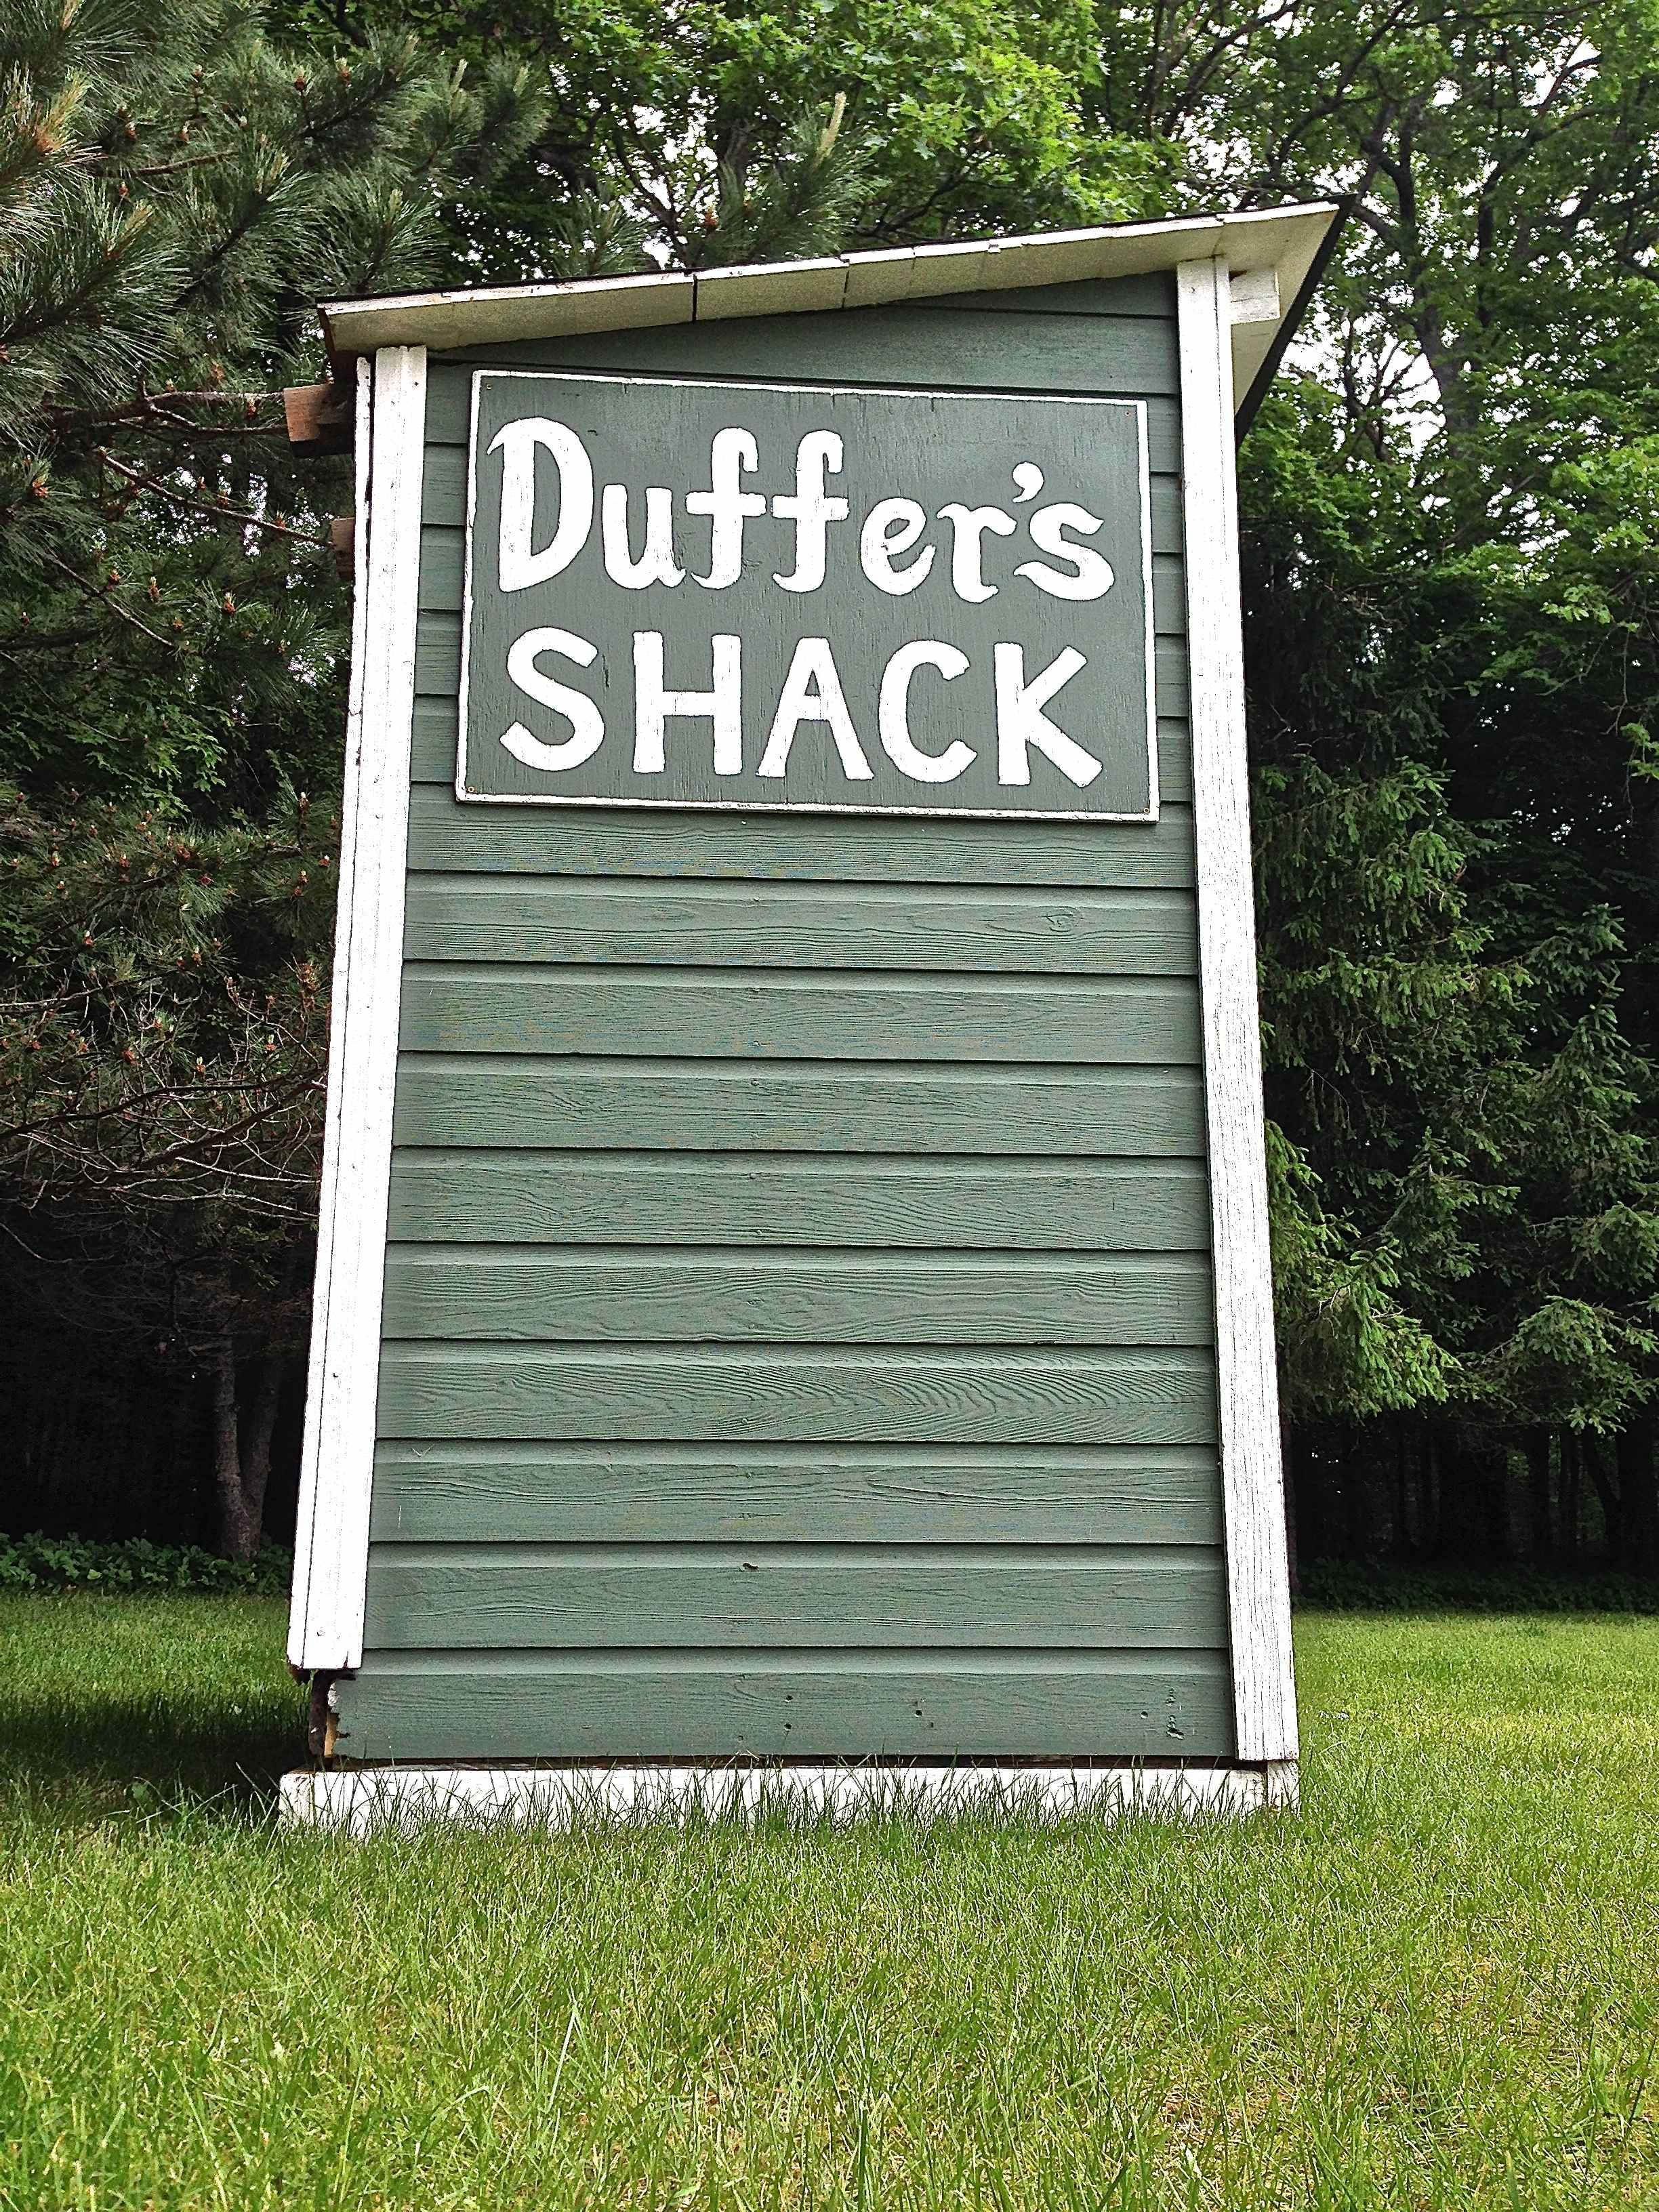 The iconic Duffer's Shack (refurbished outhouse), is your pro shop and starter shack all-in-one. This is where you grab your club and ball and prepare for fun. Picture is taken from first tee box.